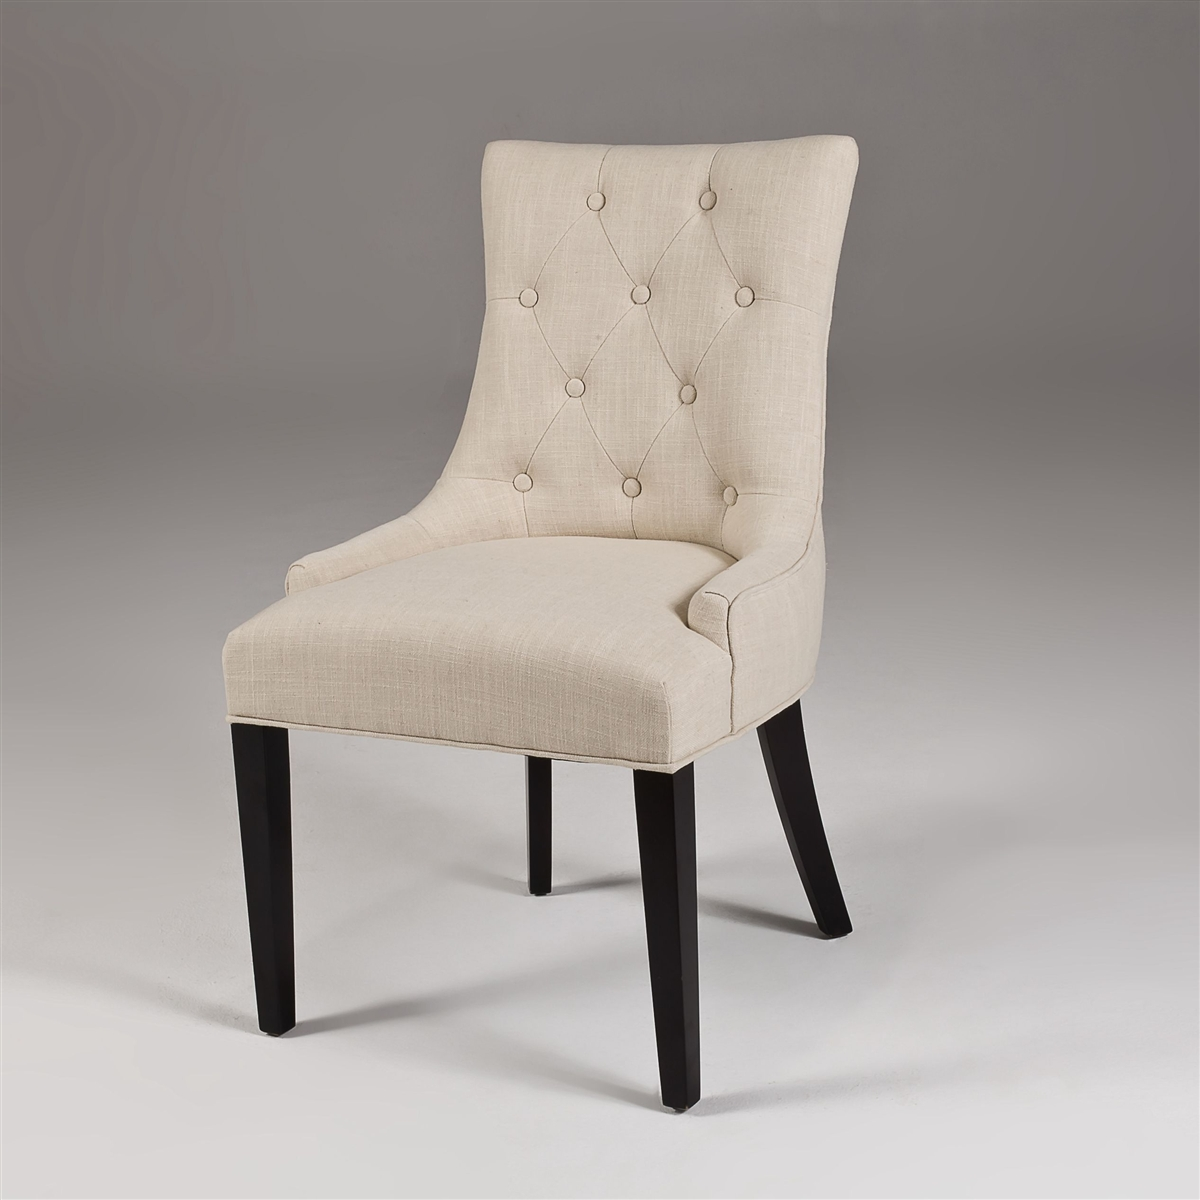 Seriena La Rochelle White Beige Linen Dining Chair With Tufted Back Barrel Curved Back Fully Assembled